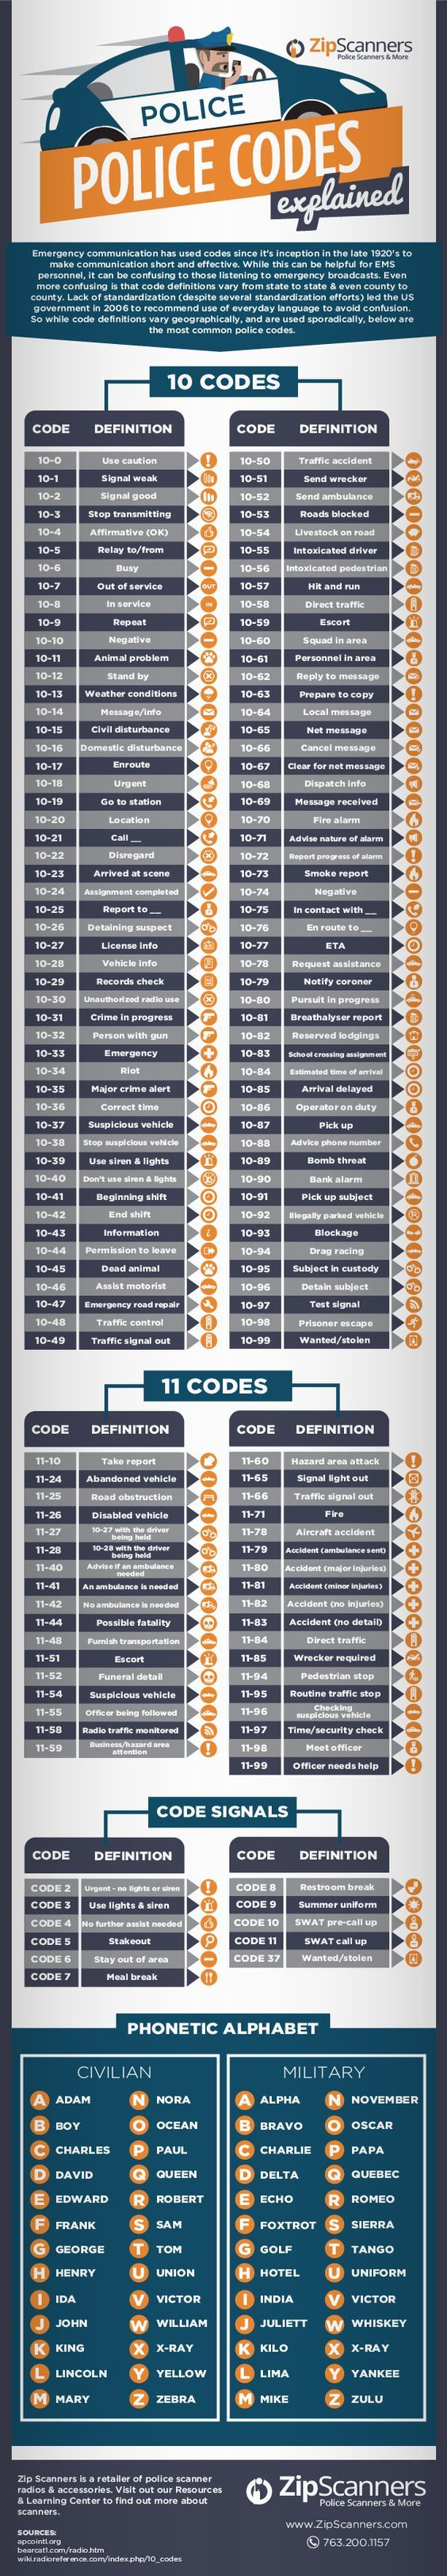 Police codes infographic.